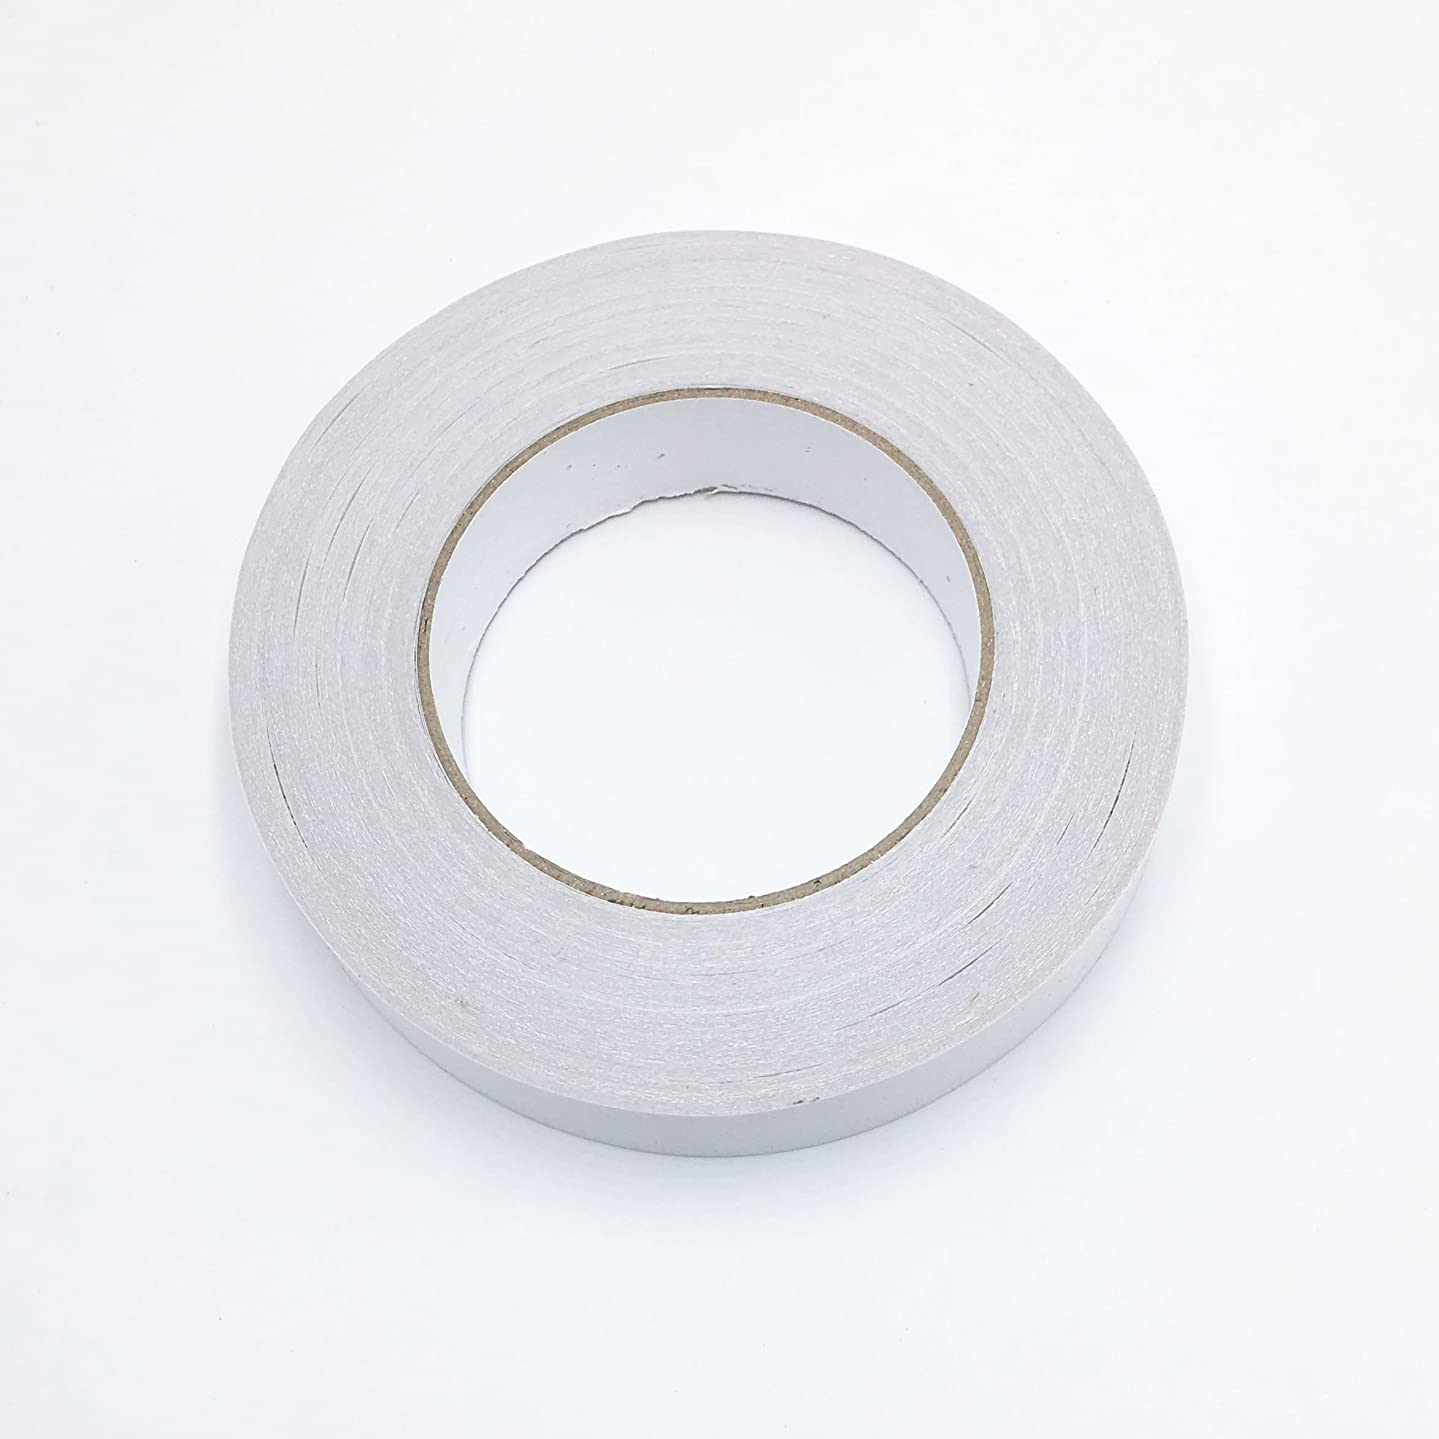 Grekywin 1 Roll Double Sided Translucent Heavy Duty Permanent Tape for Craft Card Making Gift Wrapping Scrapbooking, 25mm(Approx 1in) x 40m(Approx 44 Yards)